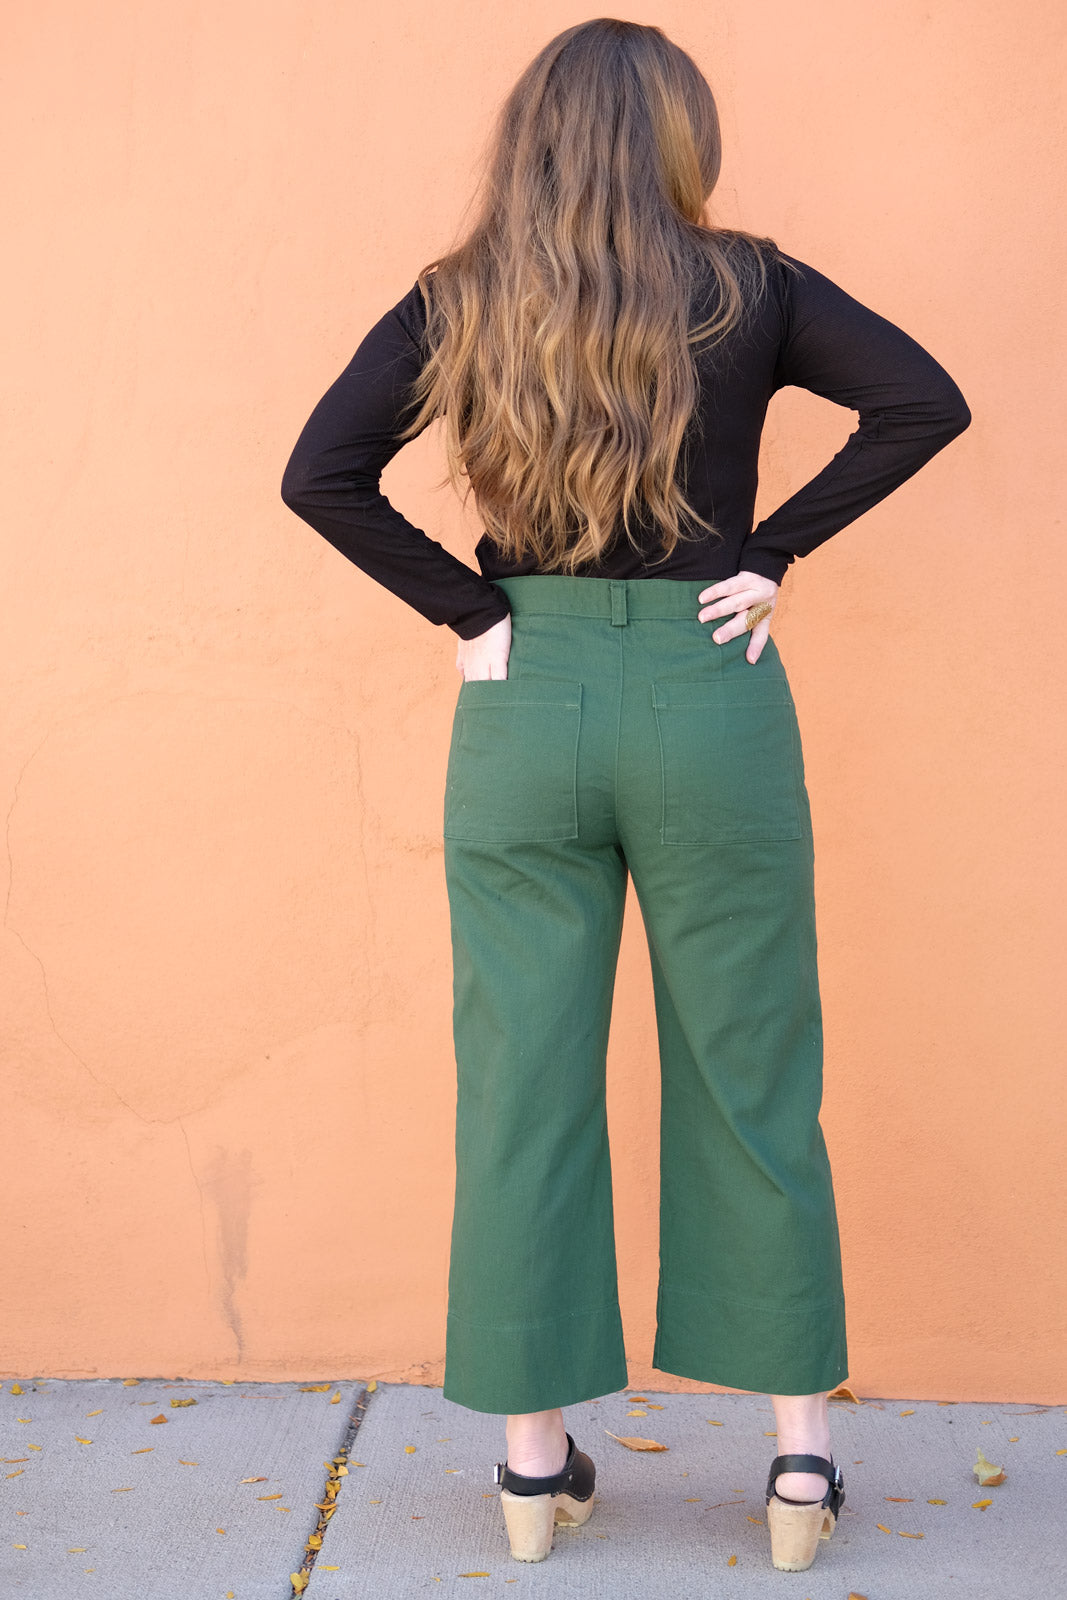 Kelli Ward's Lander Pants